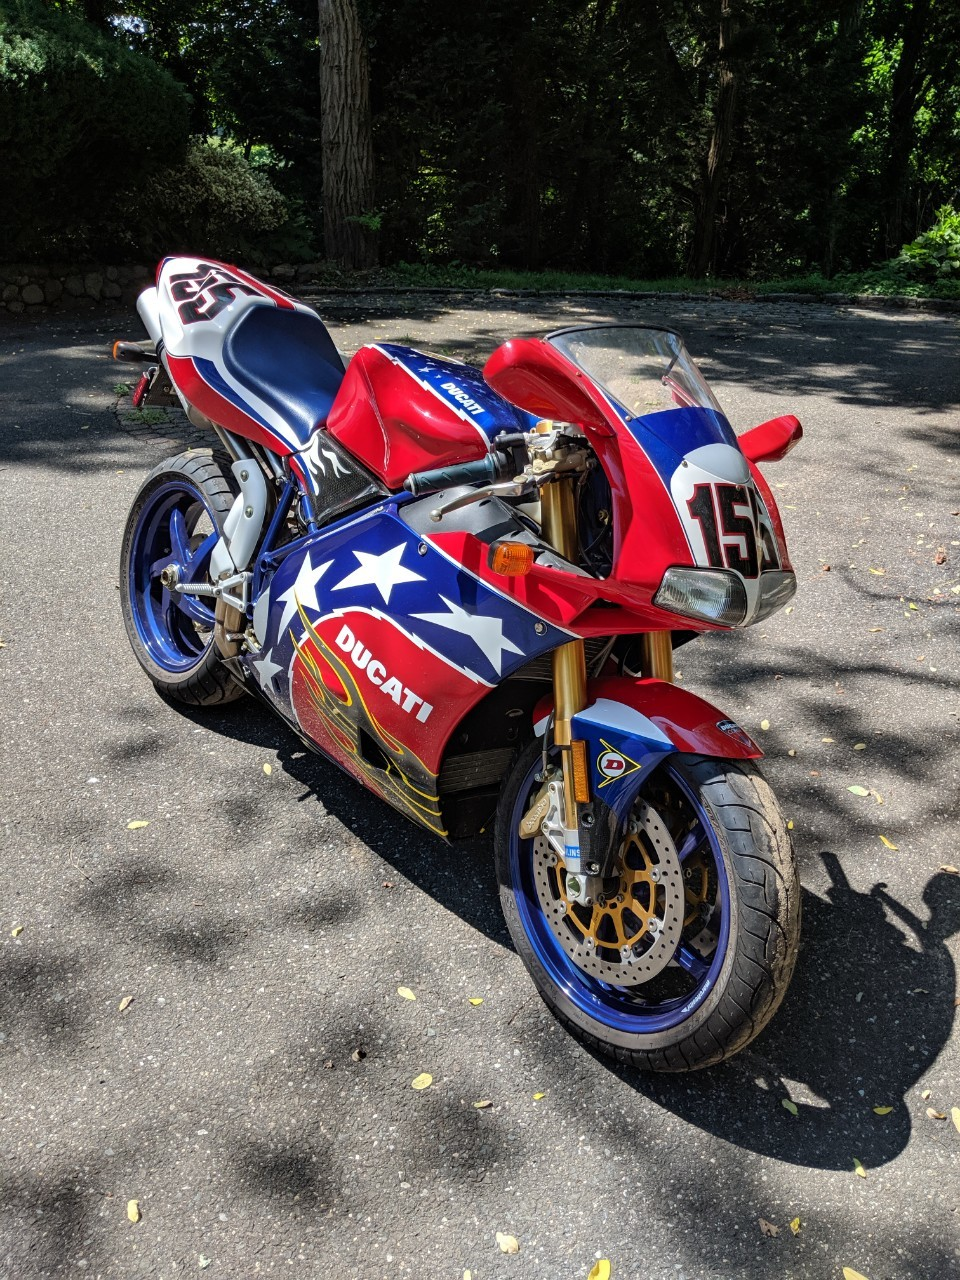 NY - Body & Frame Motorcycles For Sale - Cycle Trader